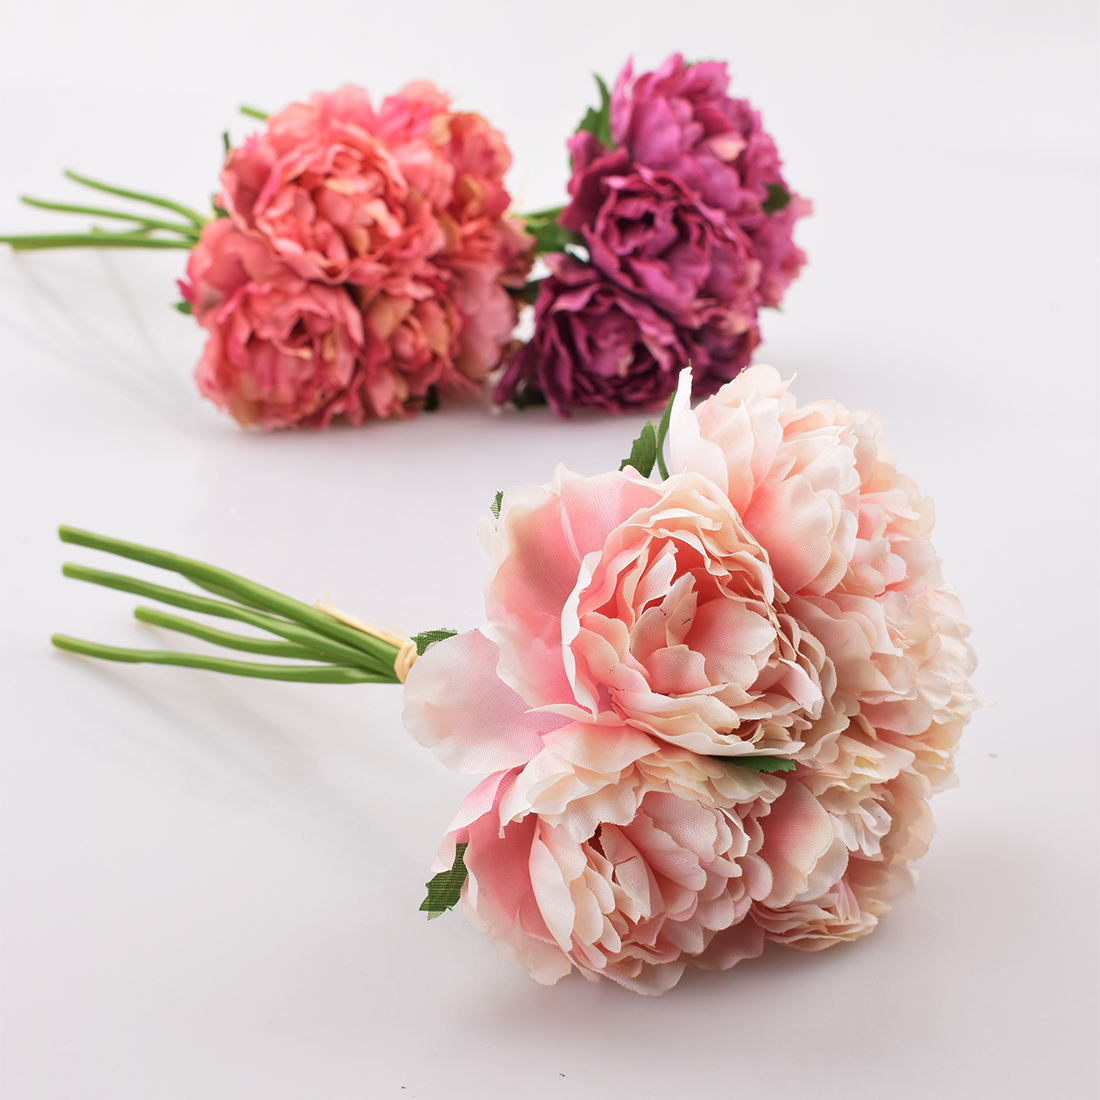 Buy Silk Flowers And Get Free Shipping On Aliexpress